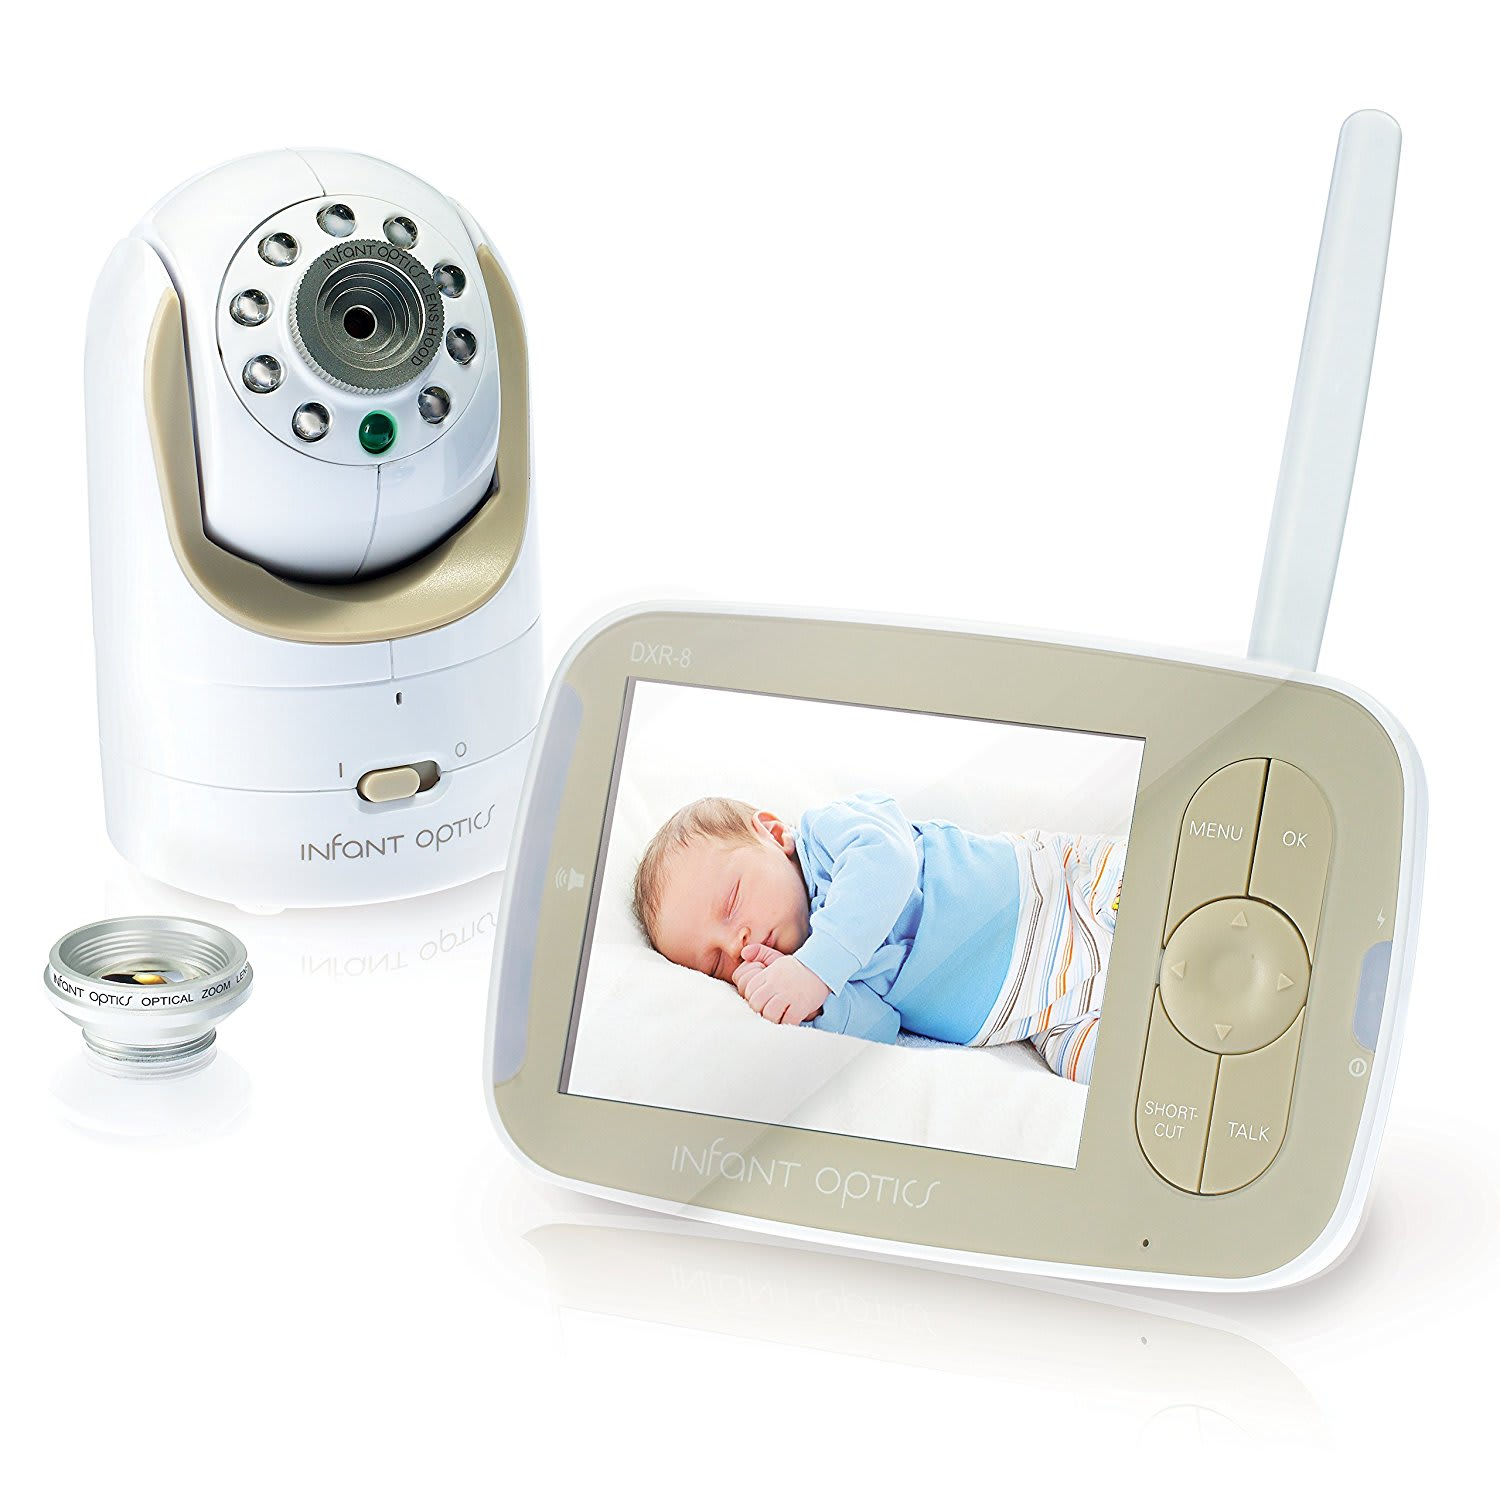 Stress-Relieving Products for New Parents: Infant Optics DXR-8 Video Baby Monitor